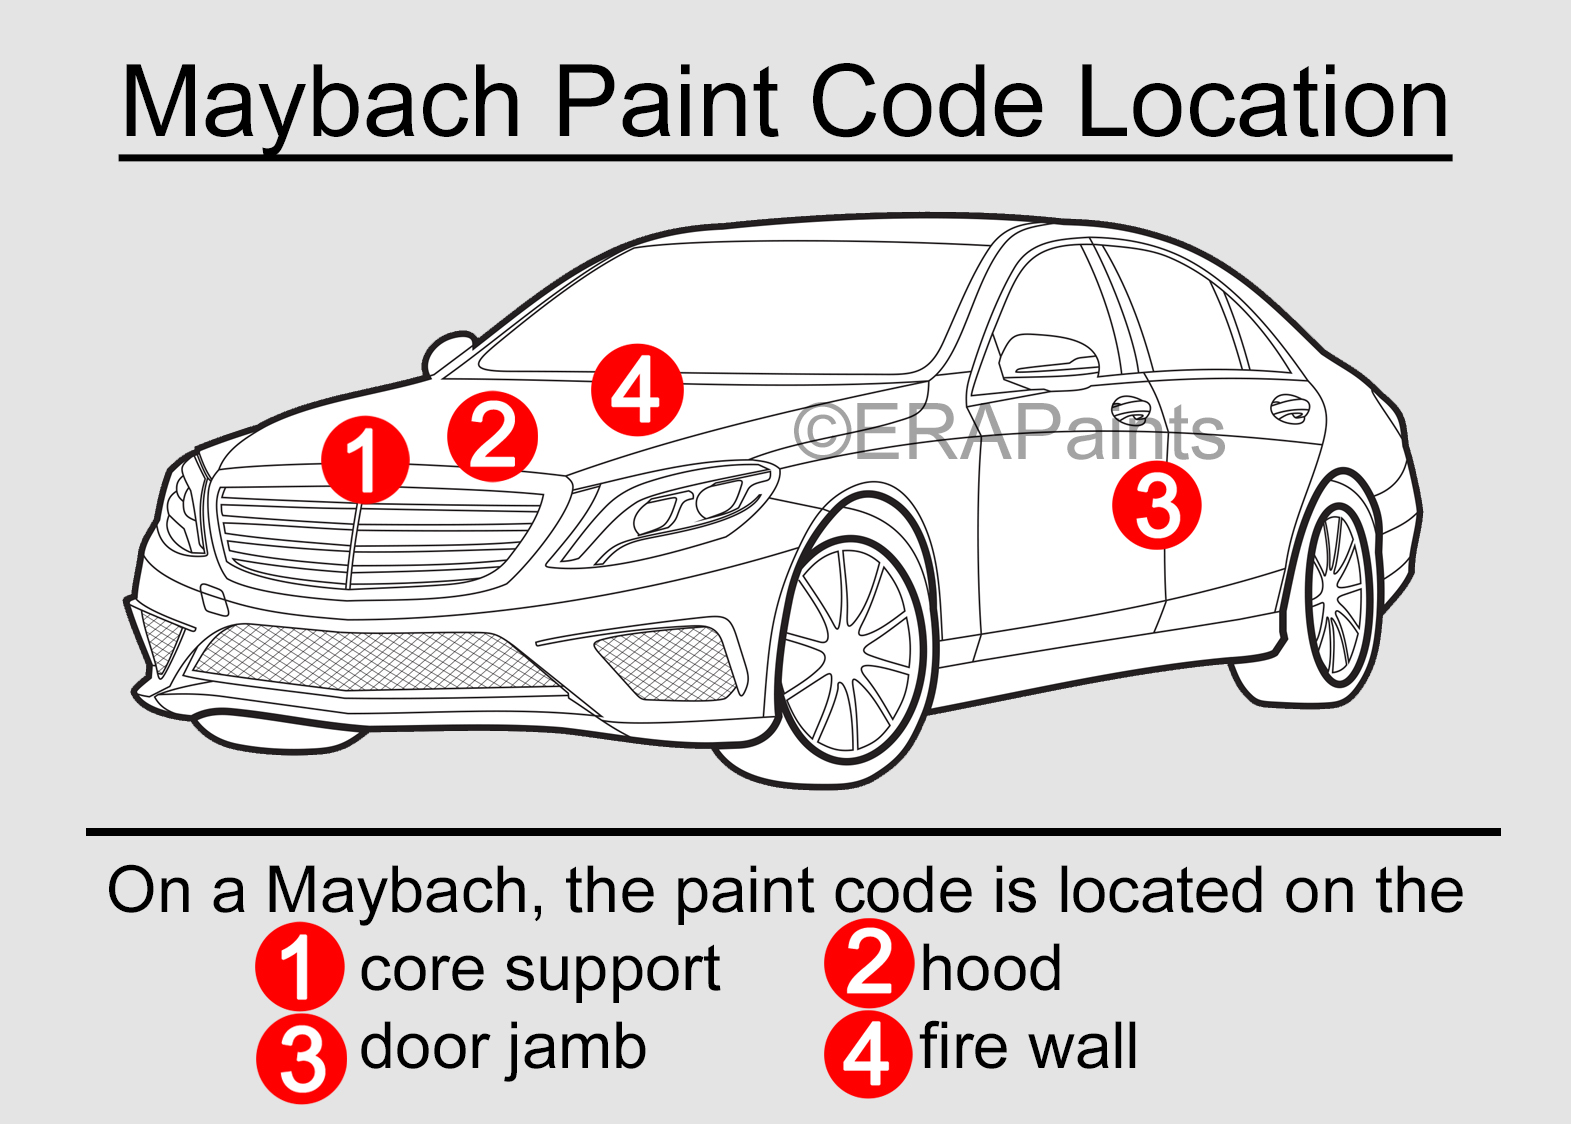 Maybach Paint Code Location